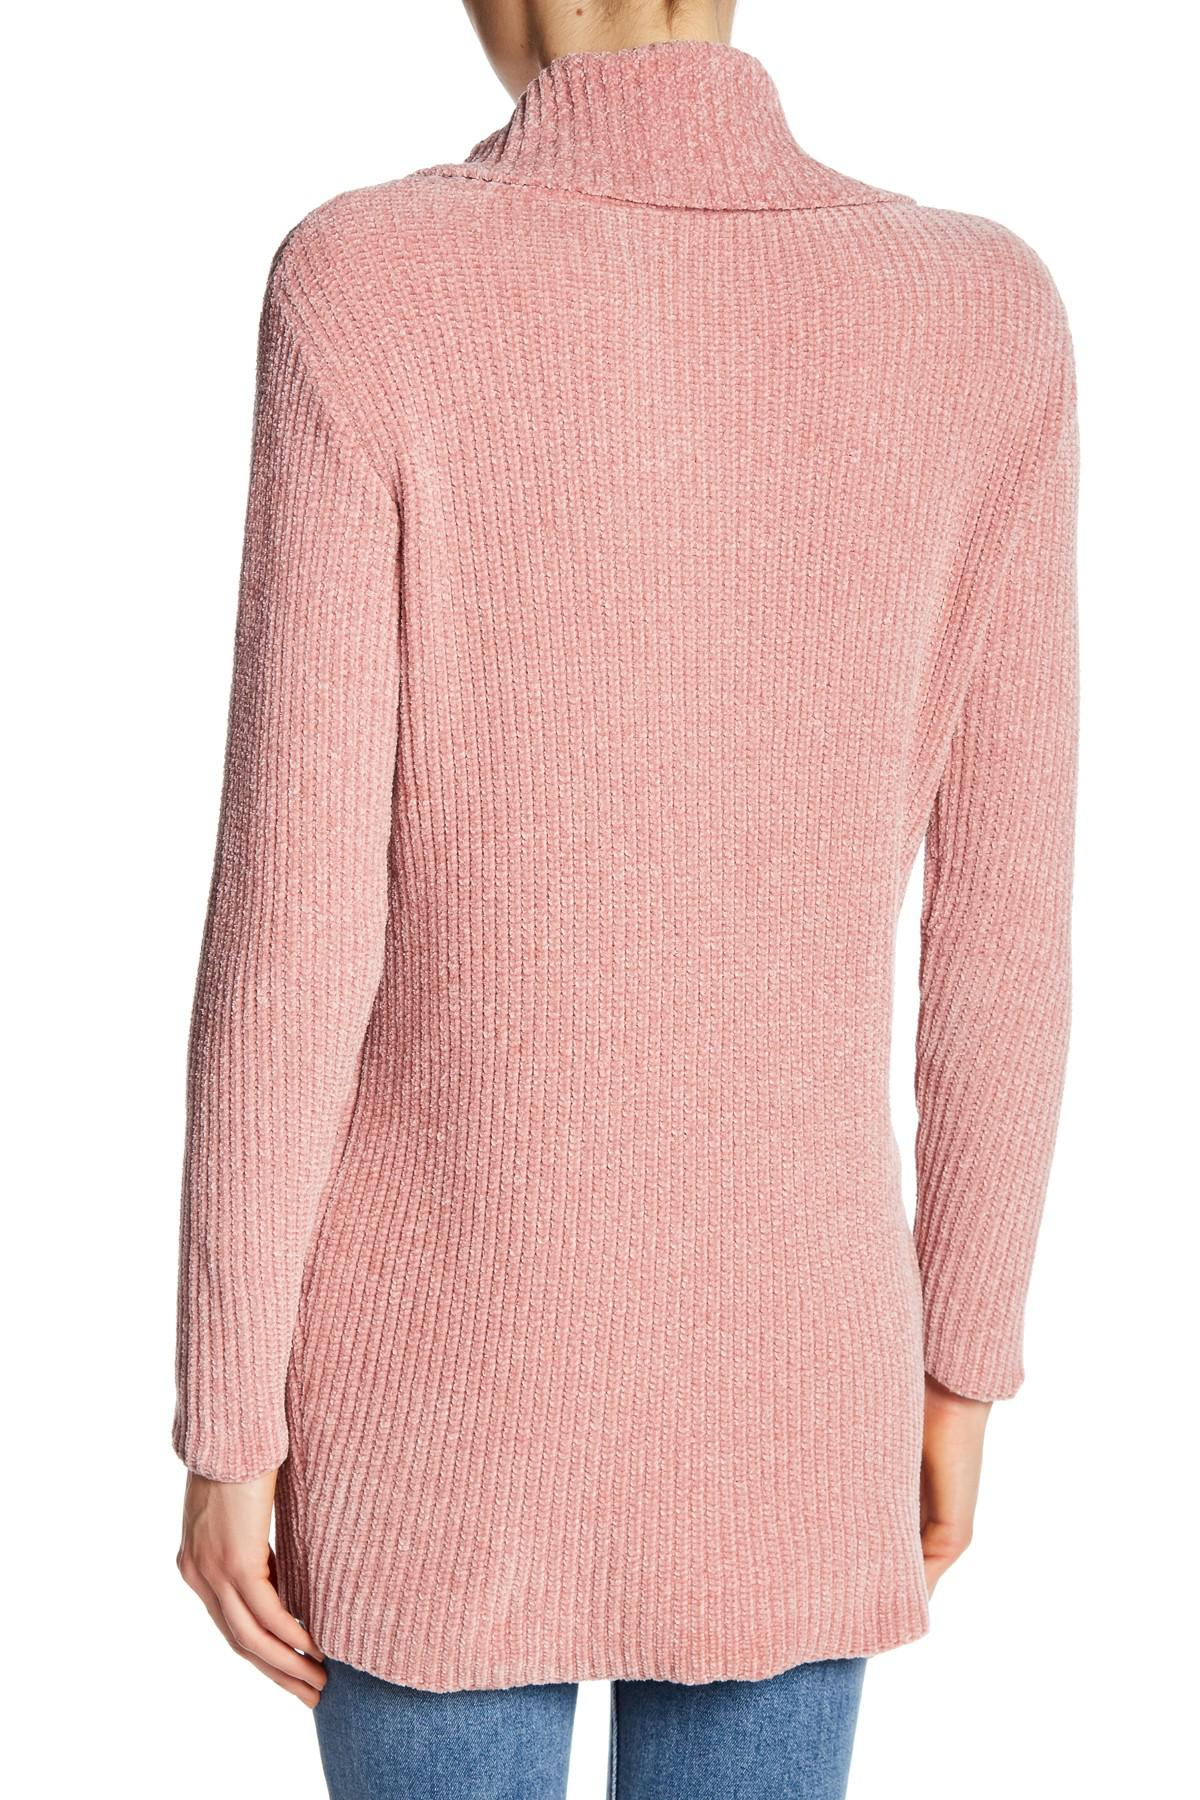 Dress forum Oversized Soft Cable Knit Turtleneck Sweater in Pink ...